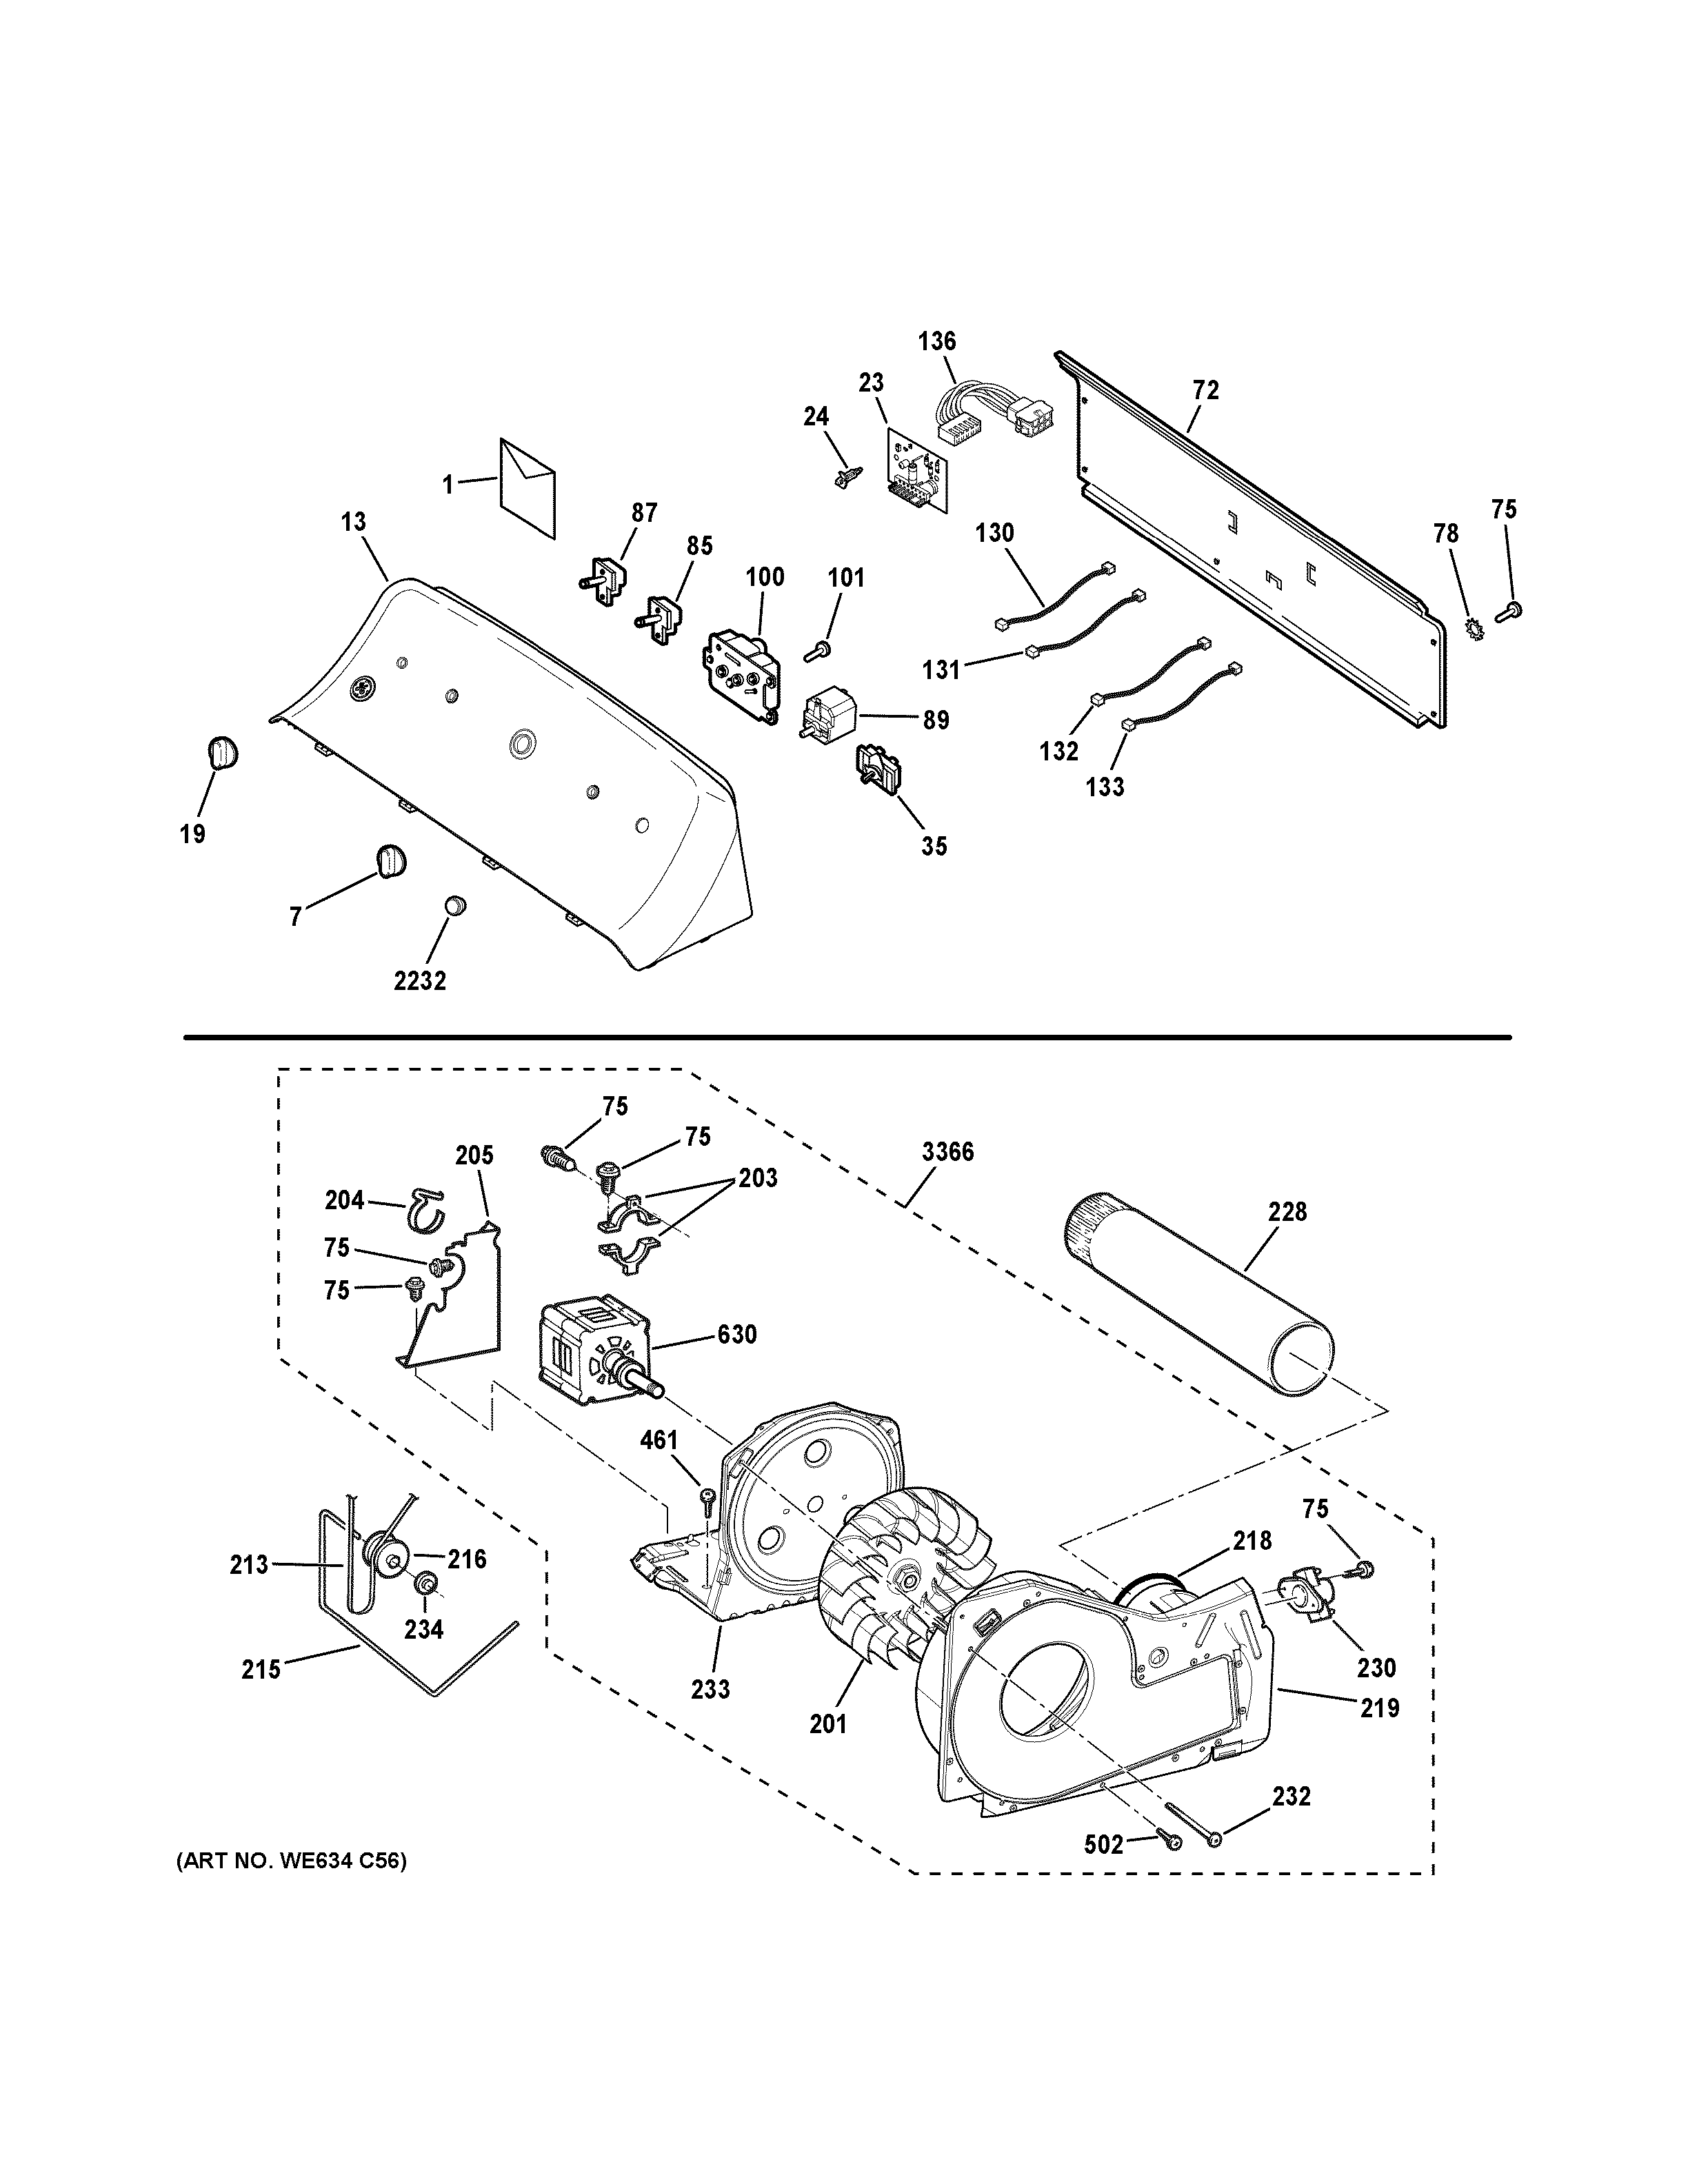 GE GTD45GASJ1WS backsplash, blower & motor assembly diagram